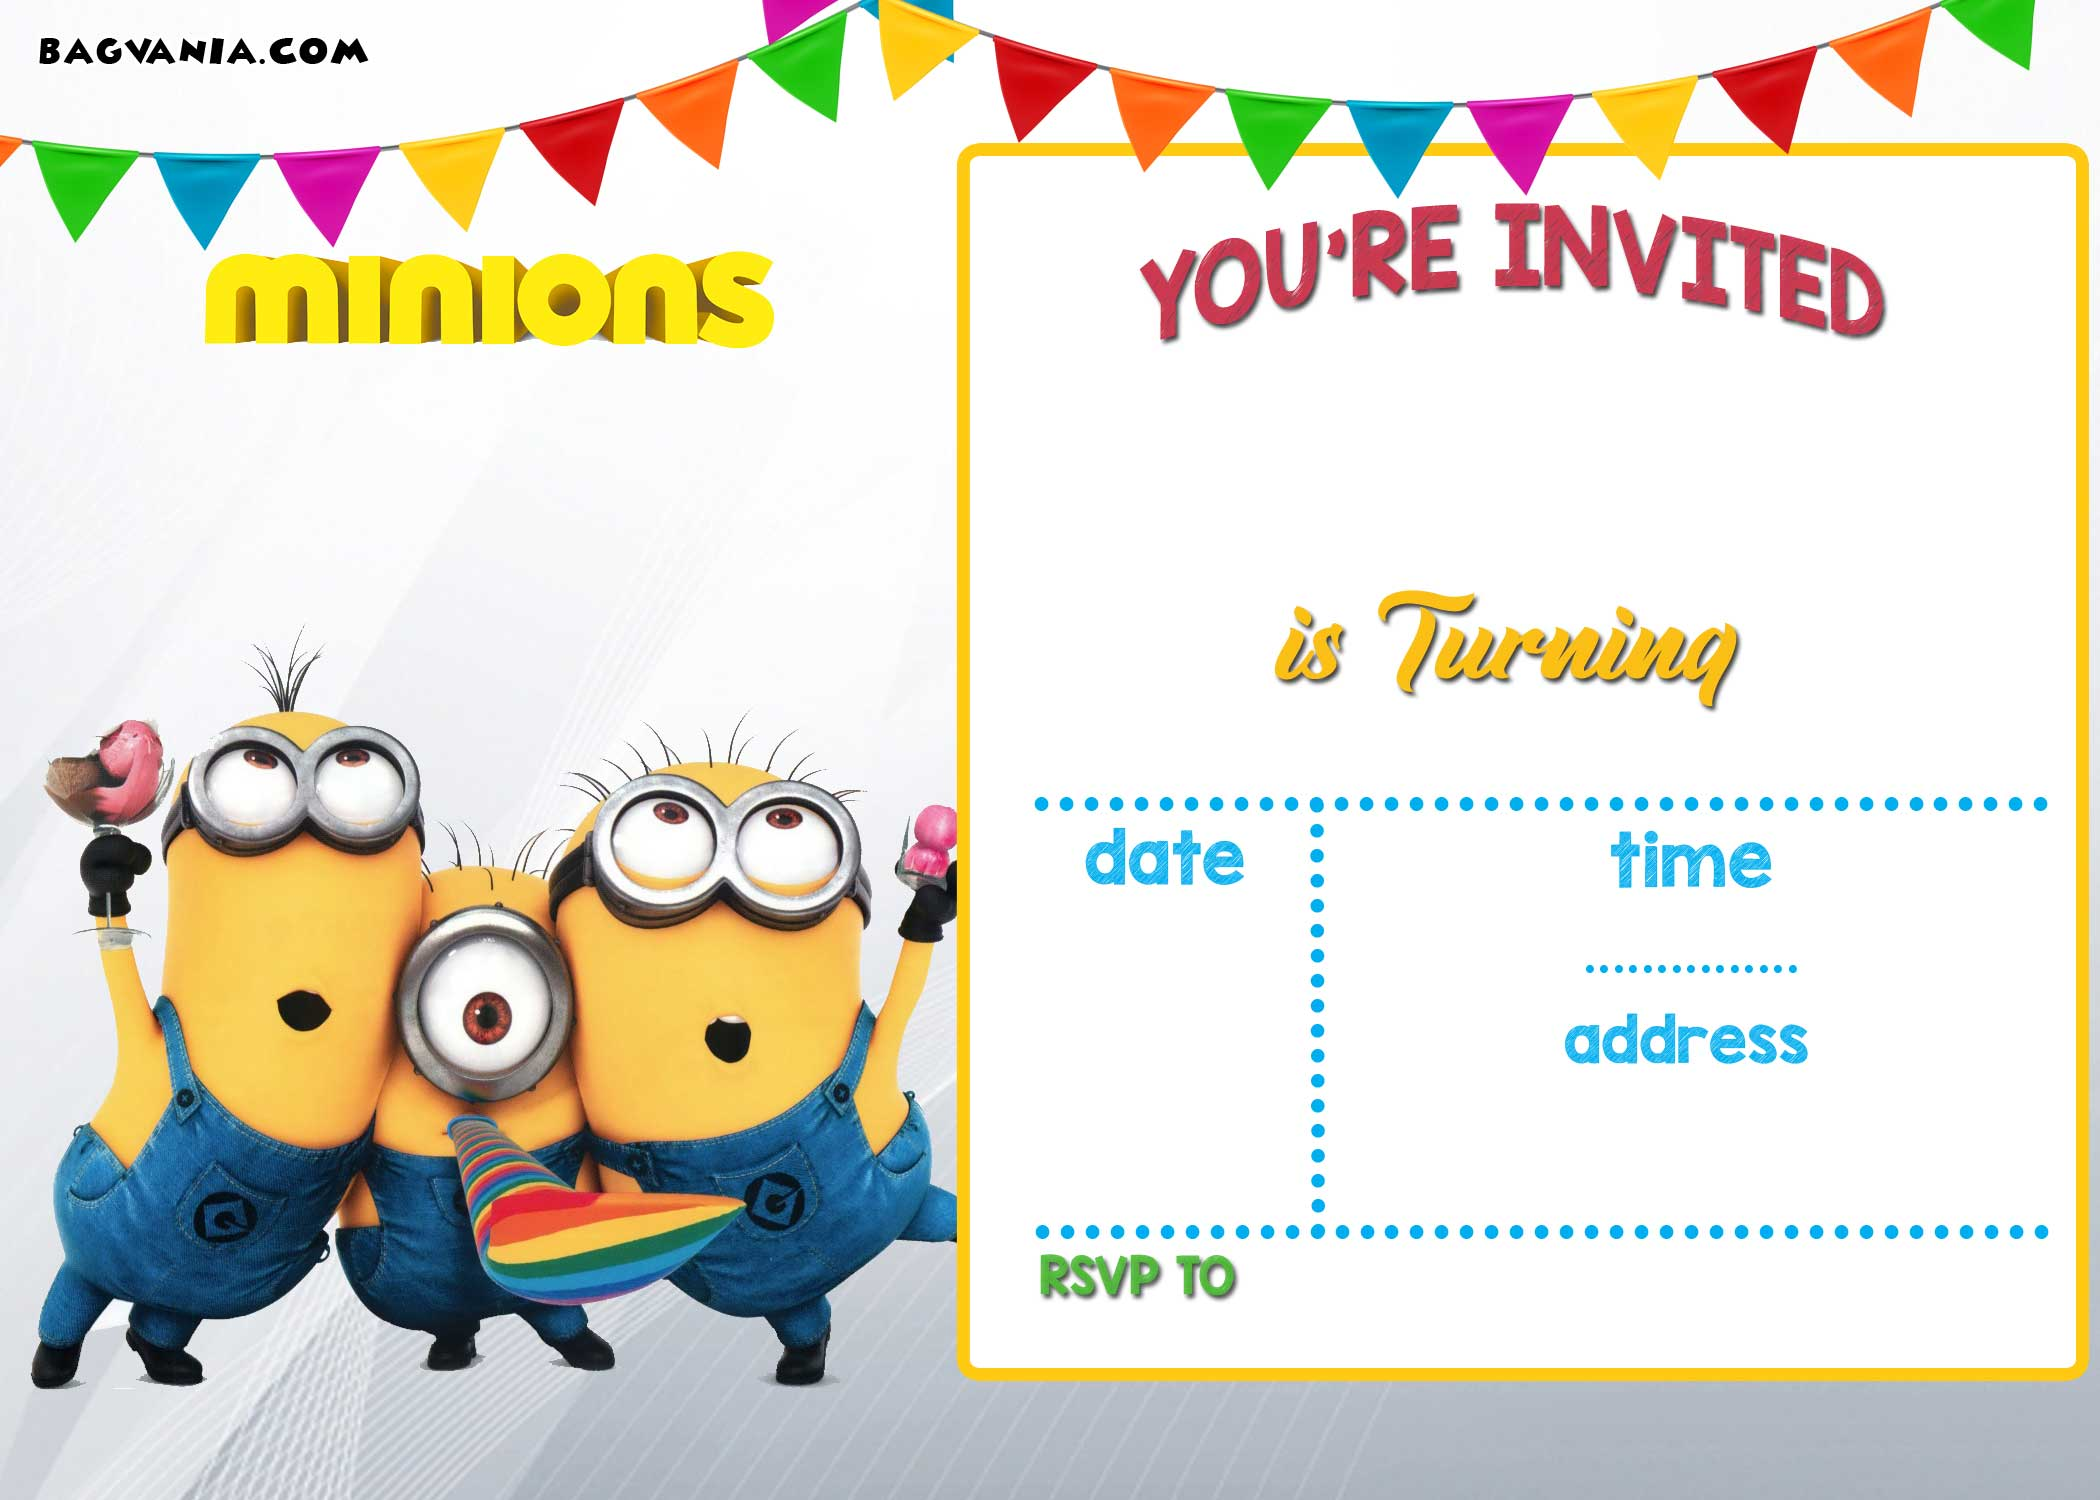 FREE Printable Minion Birthday Party Invitations Ideas Template - Birthday invitation simple wording